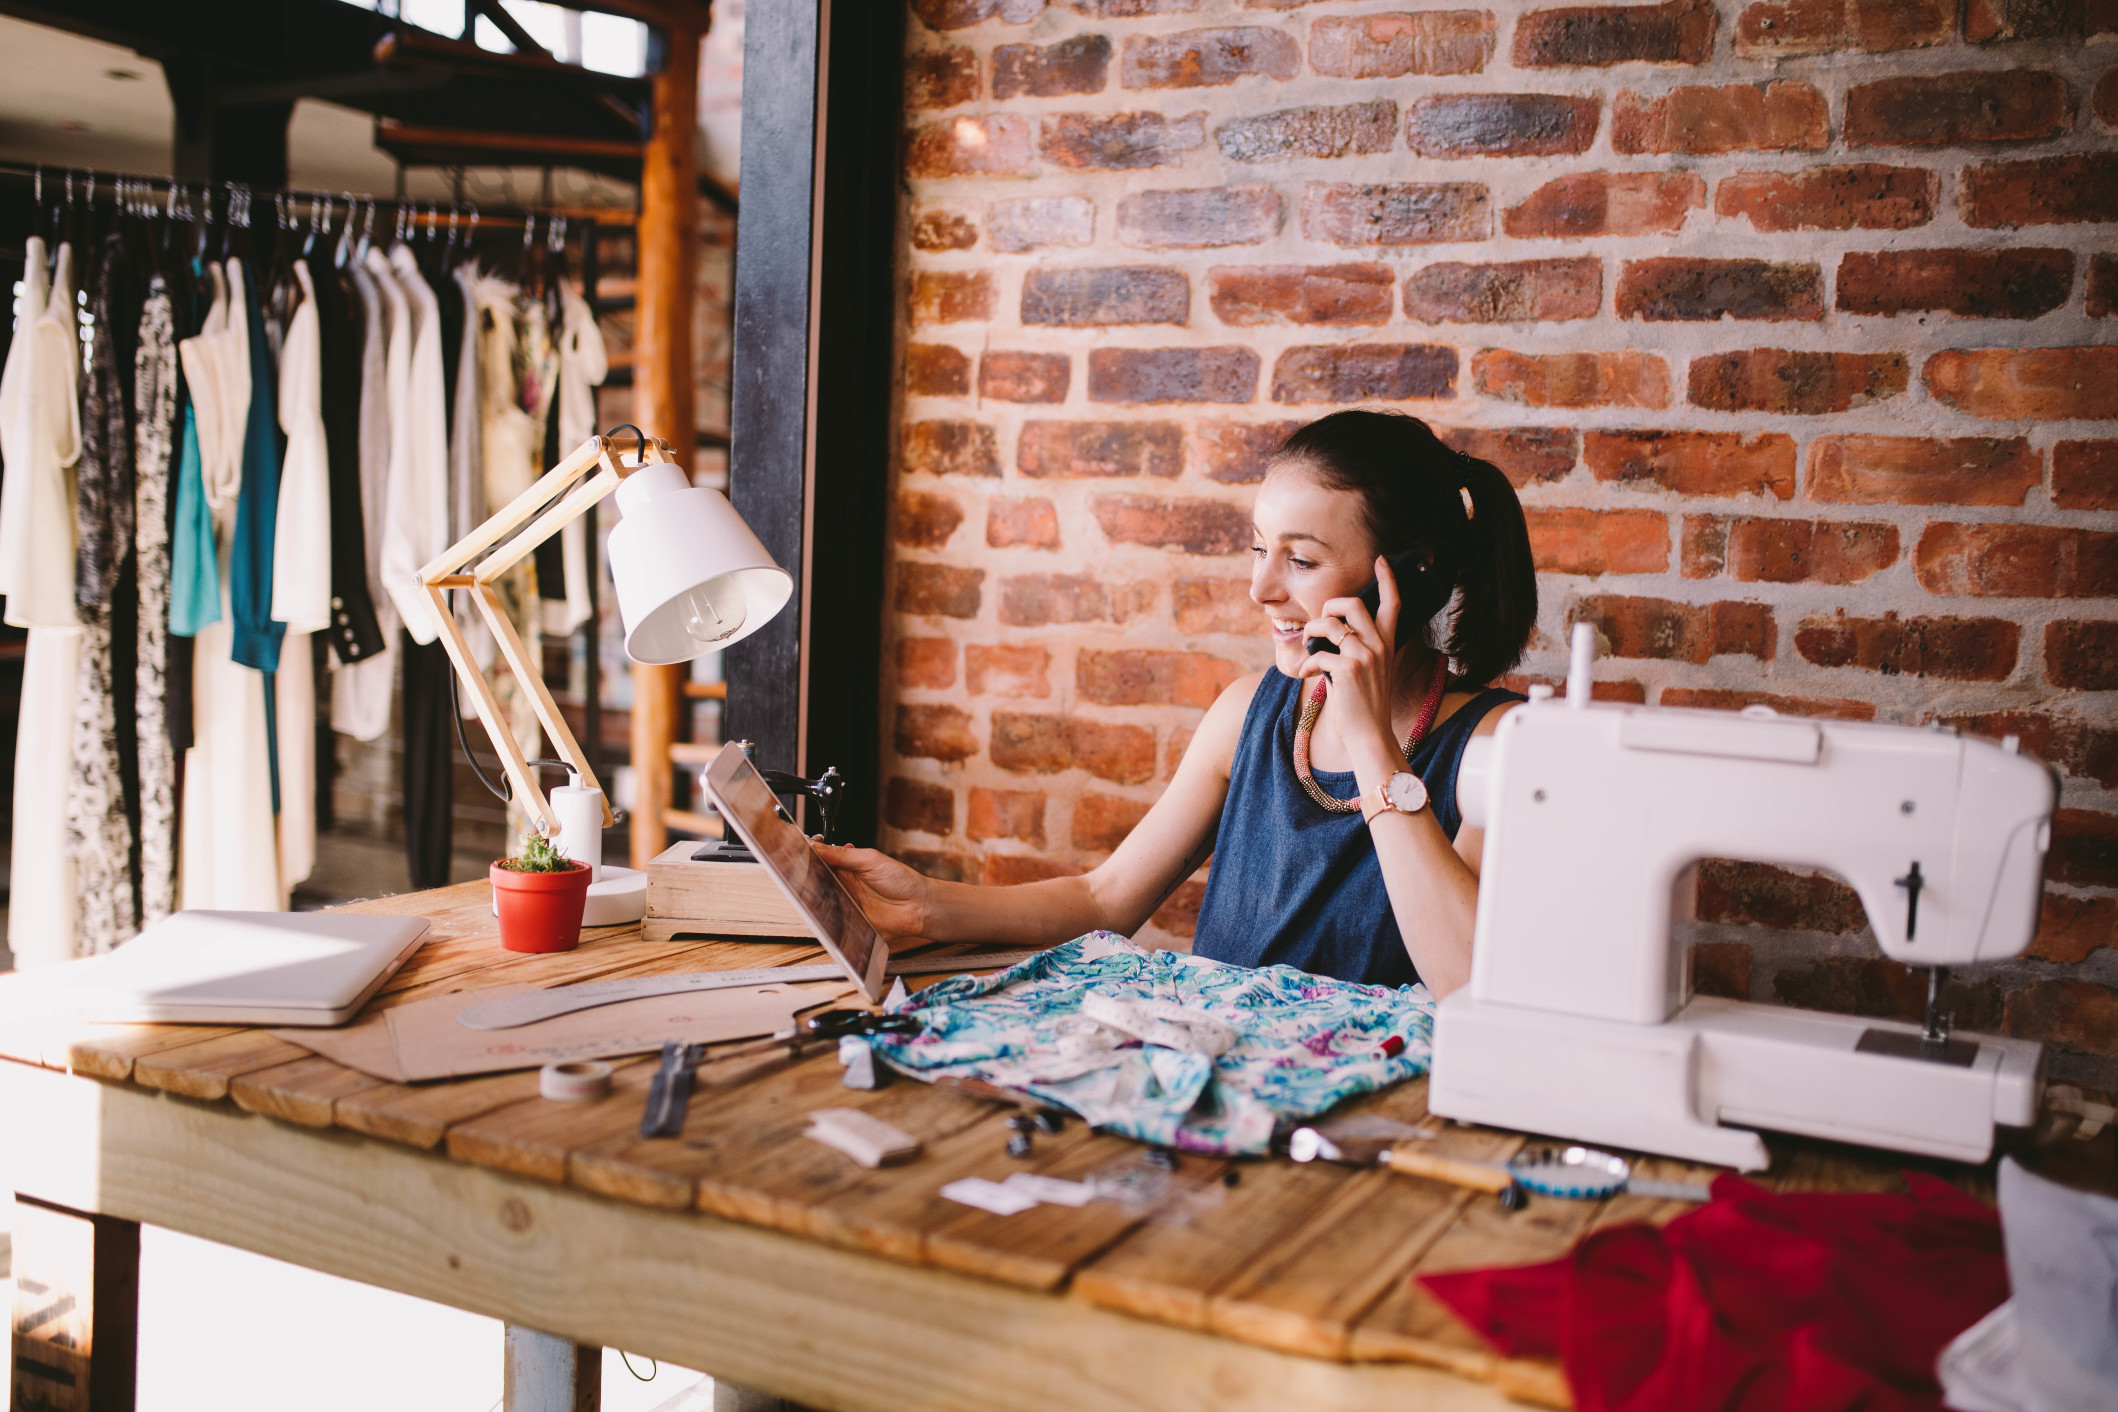 The big increase in women-owned online businesses